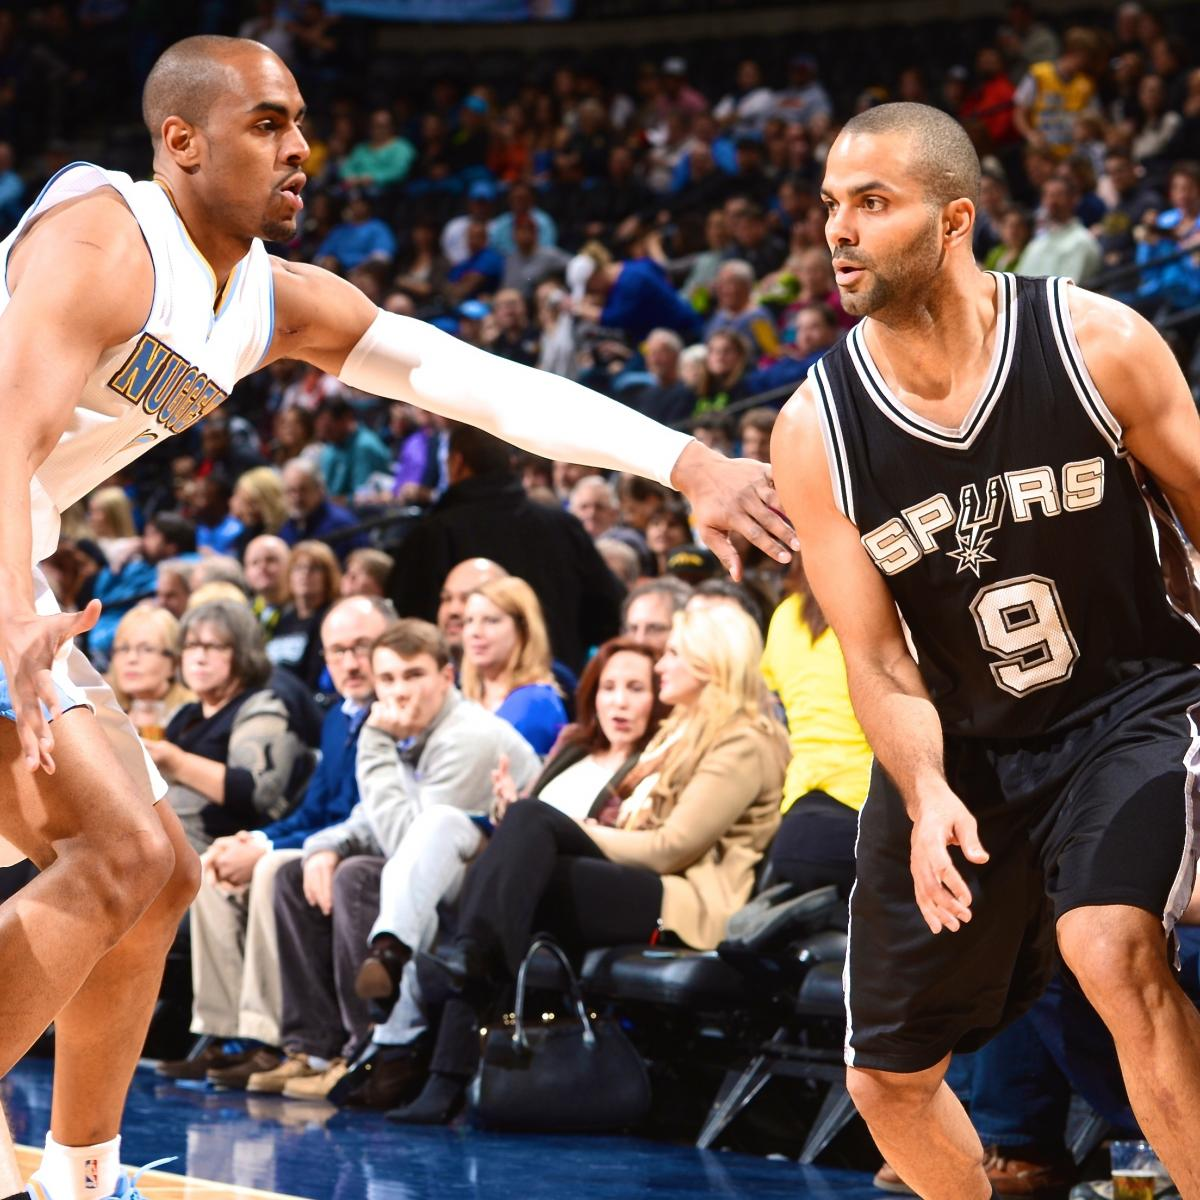 San Antonio Spurs Vs. Denver Nuggets: Live Score